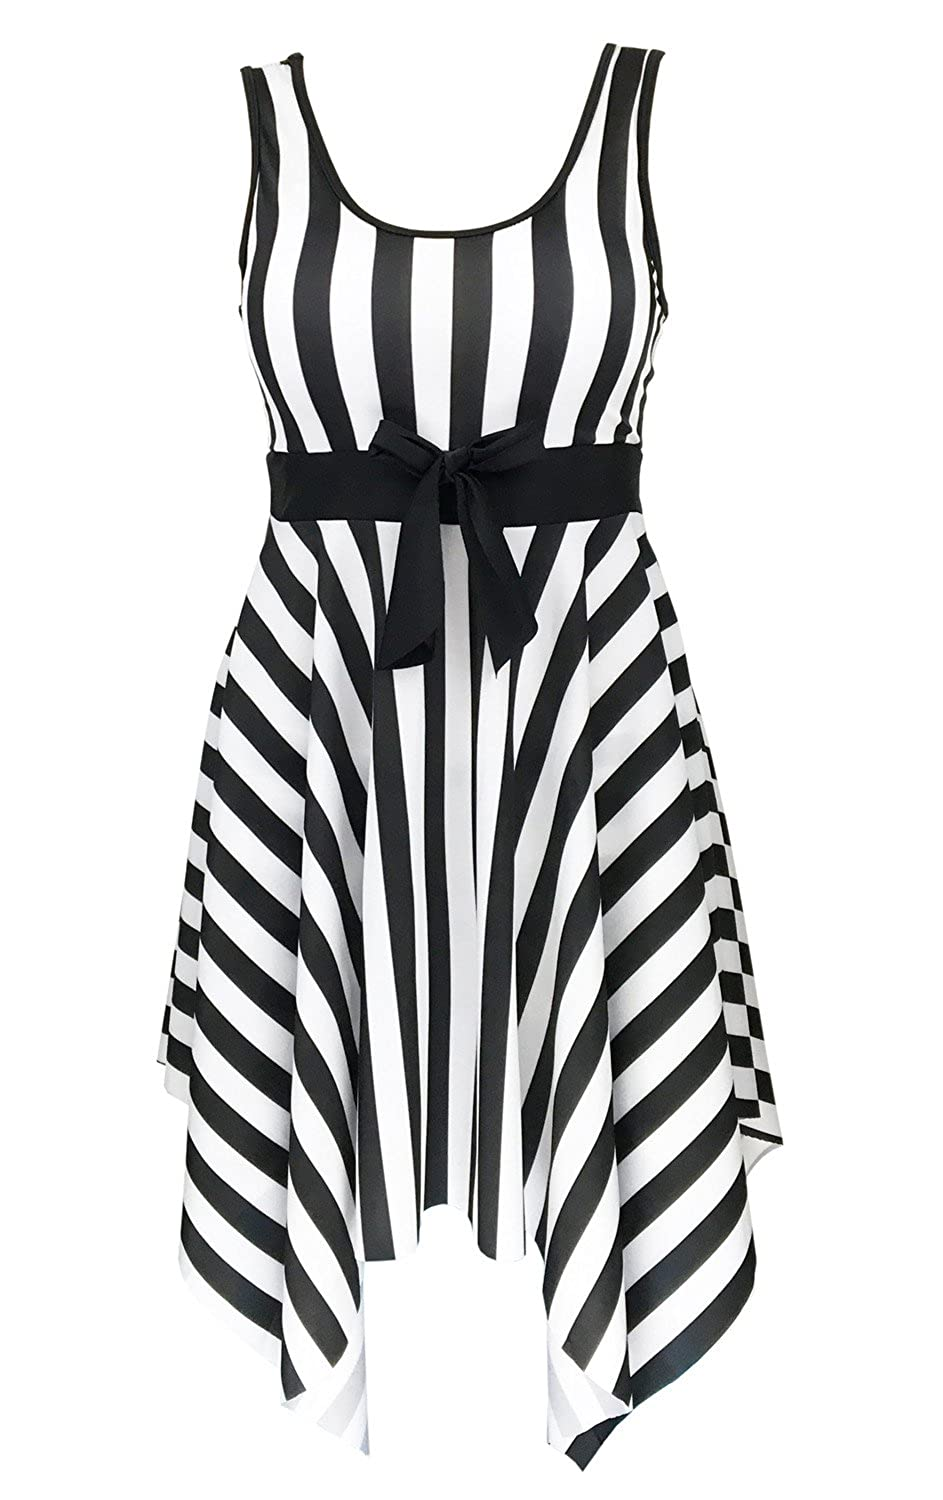 DANIFY Women's One Piece Swimsuit Sailor Striped Plus Size Swimwear Cover up Swimdress